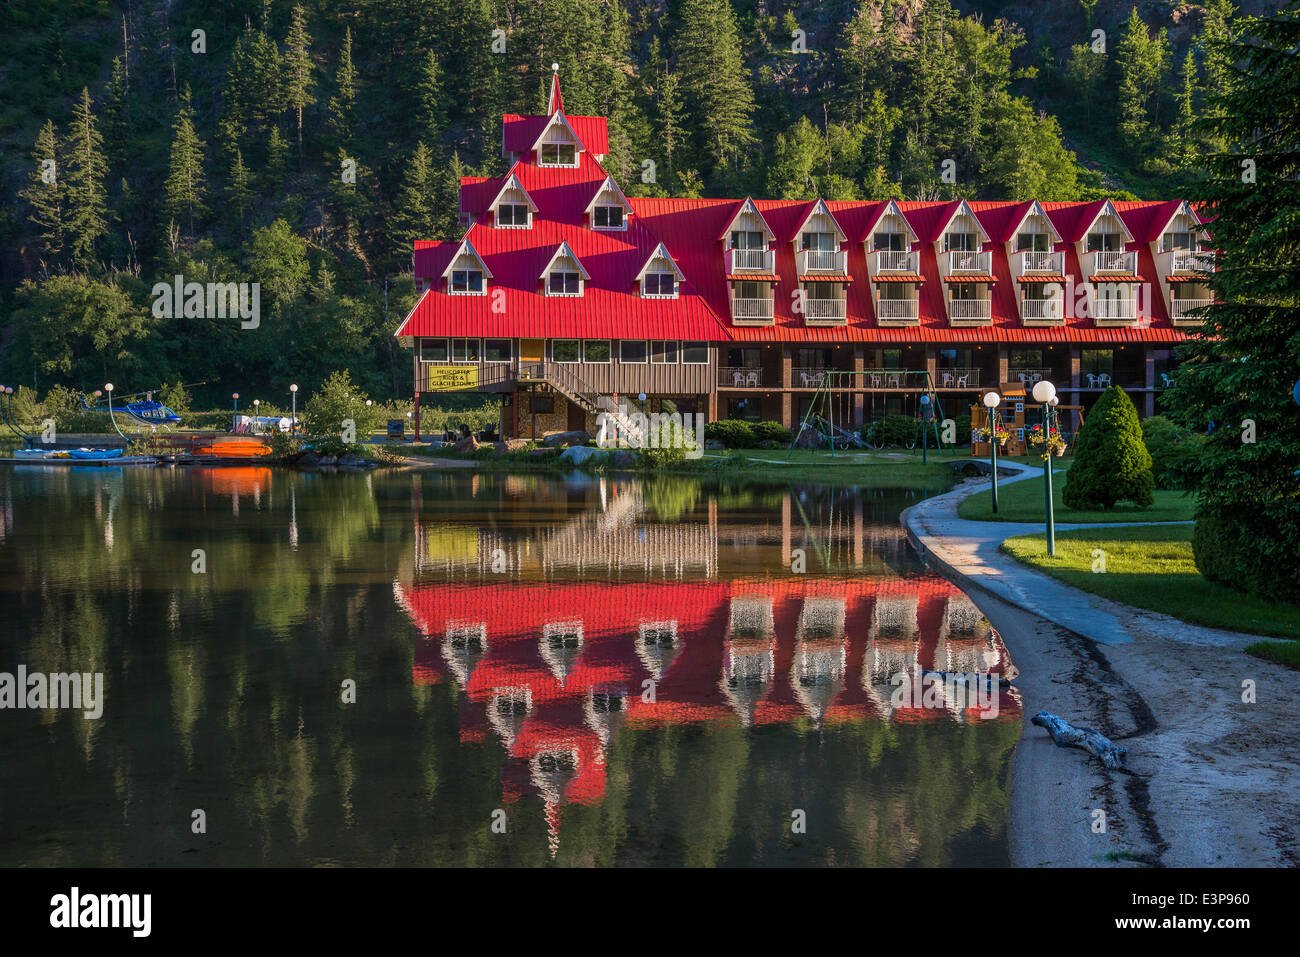 Hotel at 3 Valley Gap, Selkirk Mountains, British Columbia, Canada - Stock Image